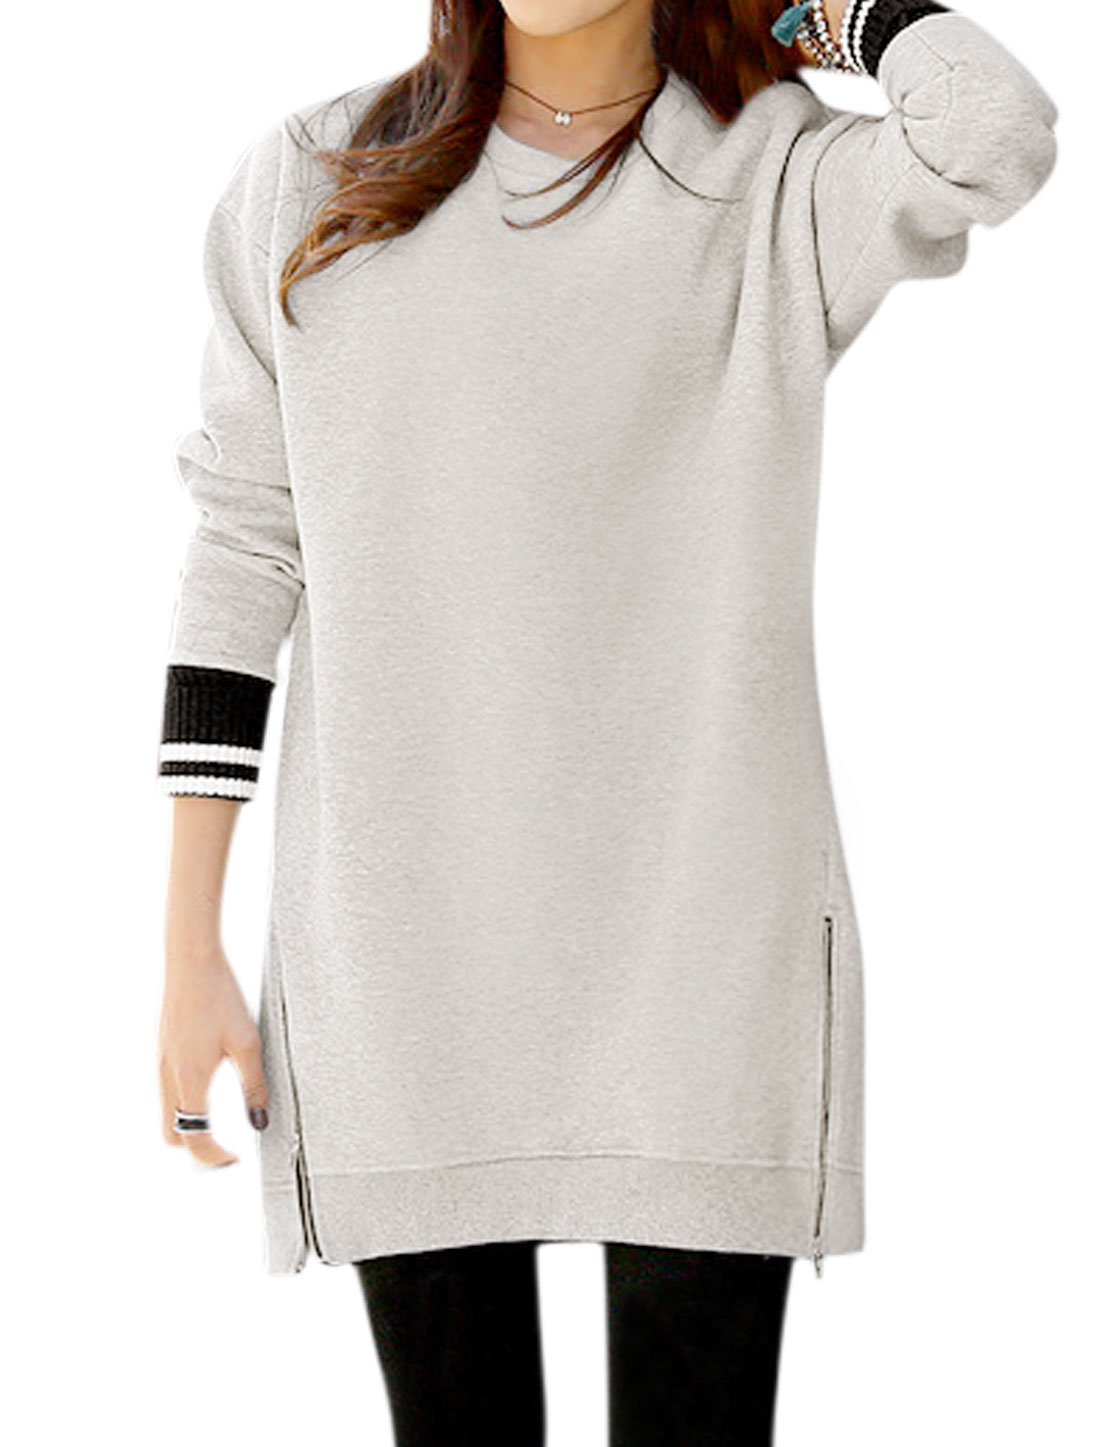 Women Long Sleeves Stripes Detail Two Zippers Tunic Sweatshirt Gray M